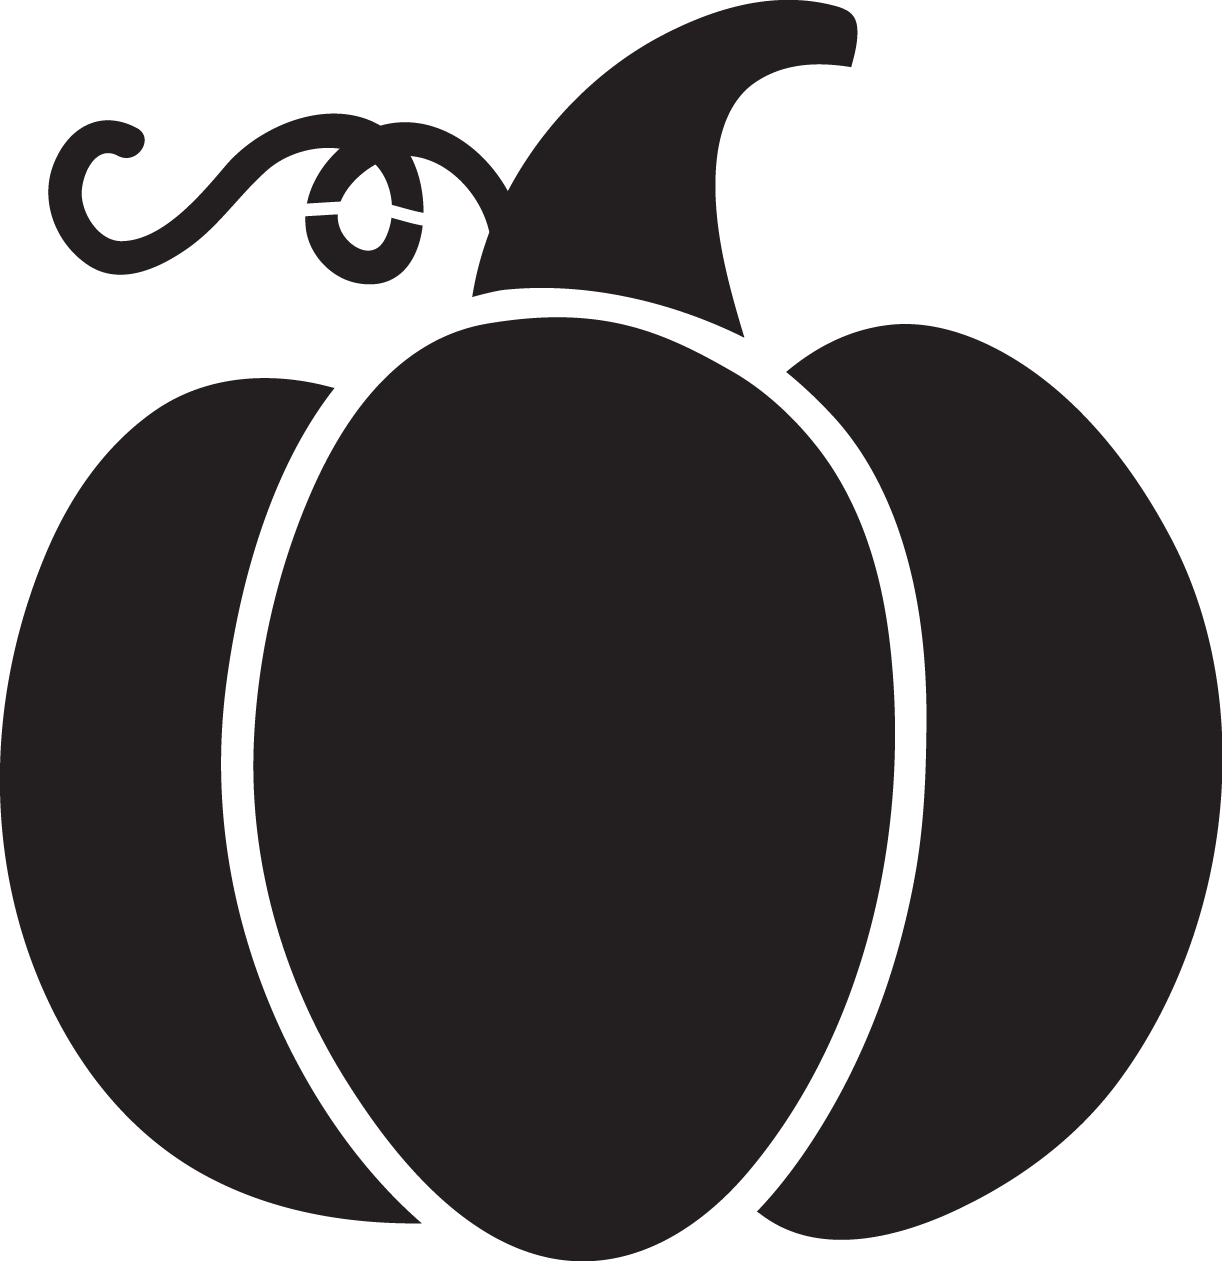 Aztec pumpkin monogram clipart png freeuse download Pumpkin Silhouette at GetDrawings.com | Free for personal use ... png freeuse download